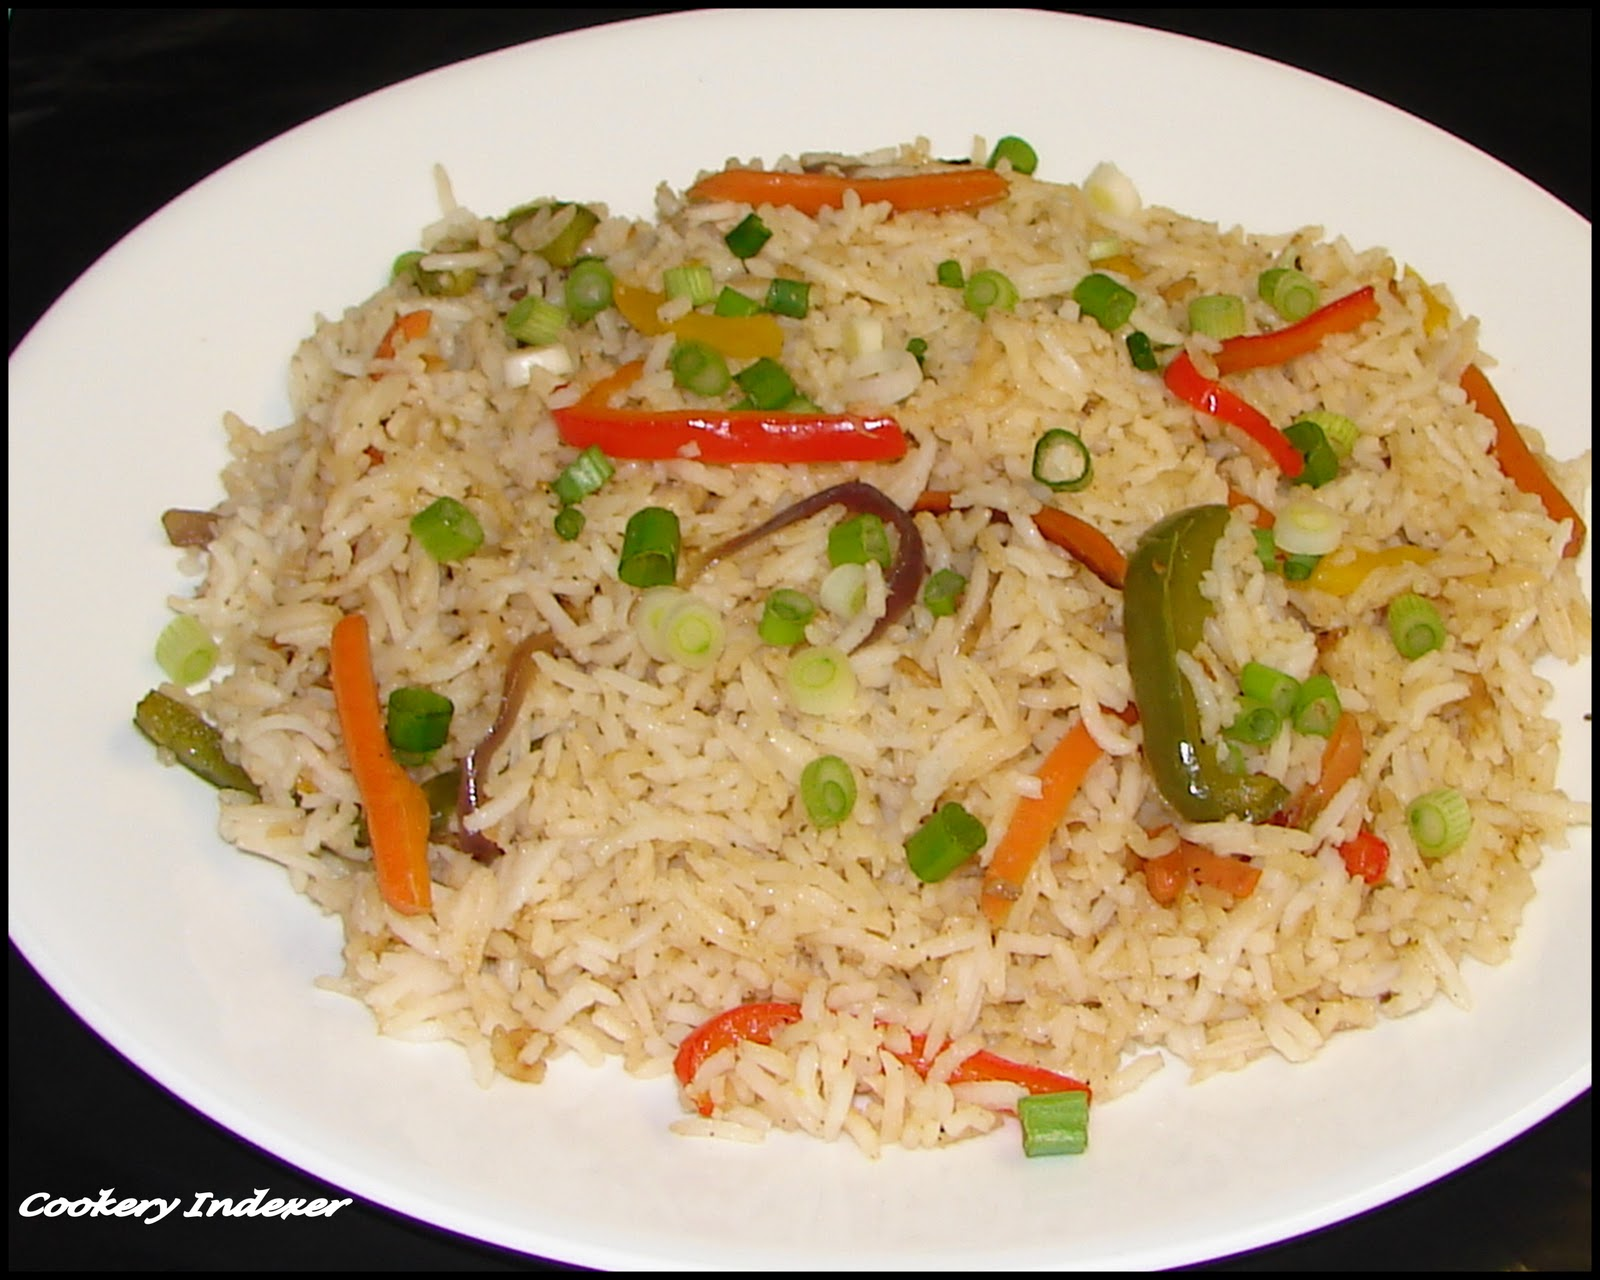 ... Indian Cuisine Blogroll !: Vegetable Fried Rice (Indo-Chinese Style